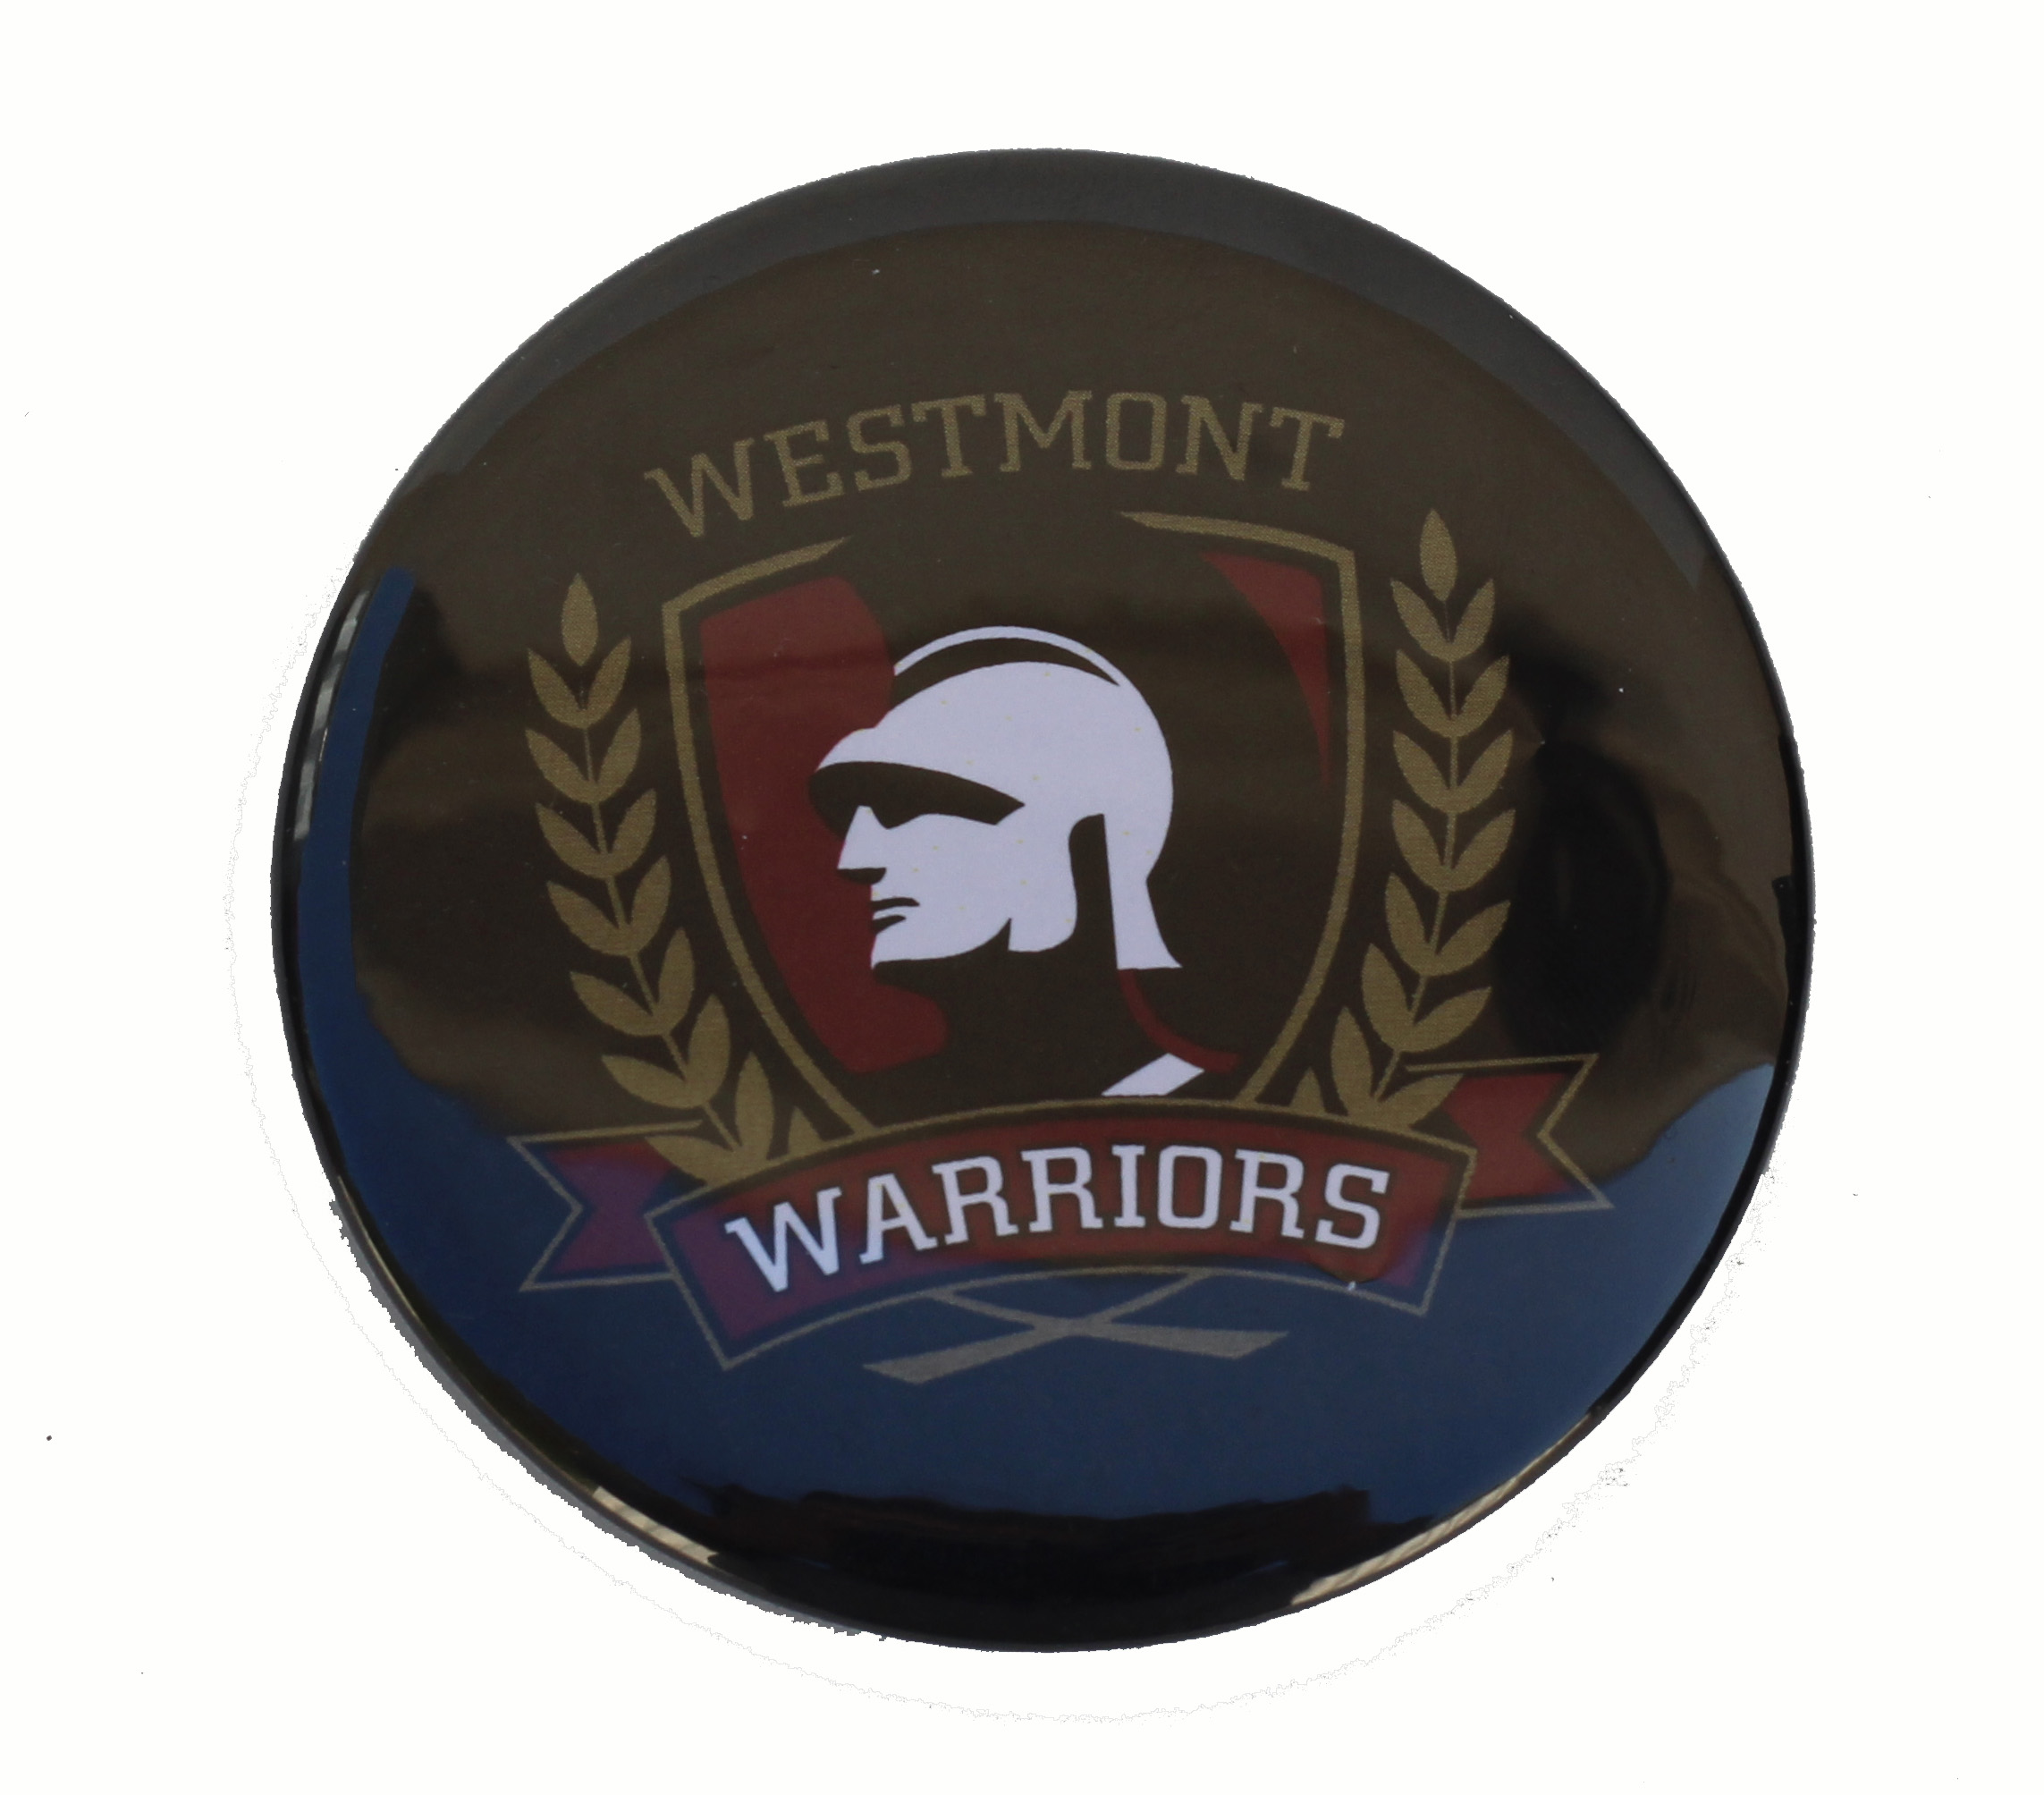 Image for the Warrior Button product